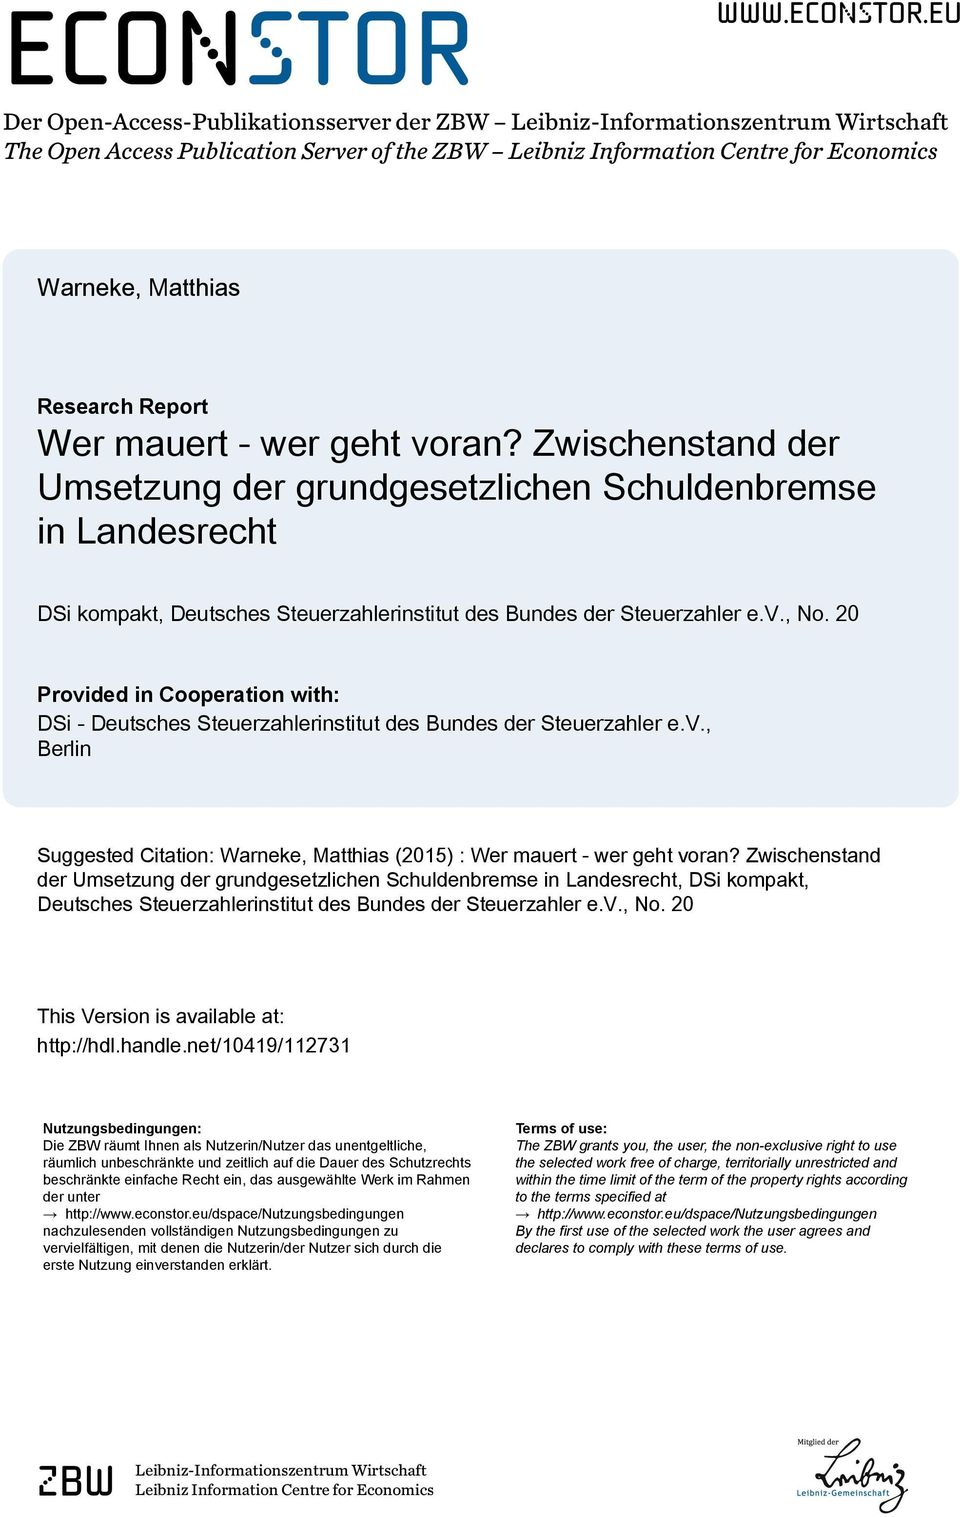 eu Der Open-Access-Publikationsserver der ZBW Leibniz-Informationszentrum Wirtschaft The Open Access Publication Server of the ZBW Leibniz Information Centre for Economics Warneke, Matthias Research